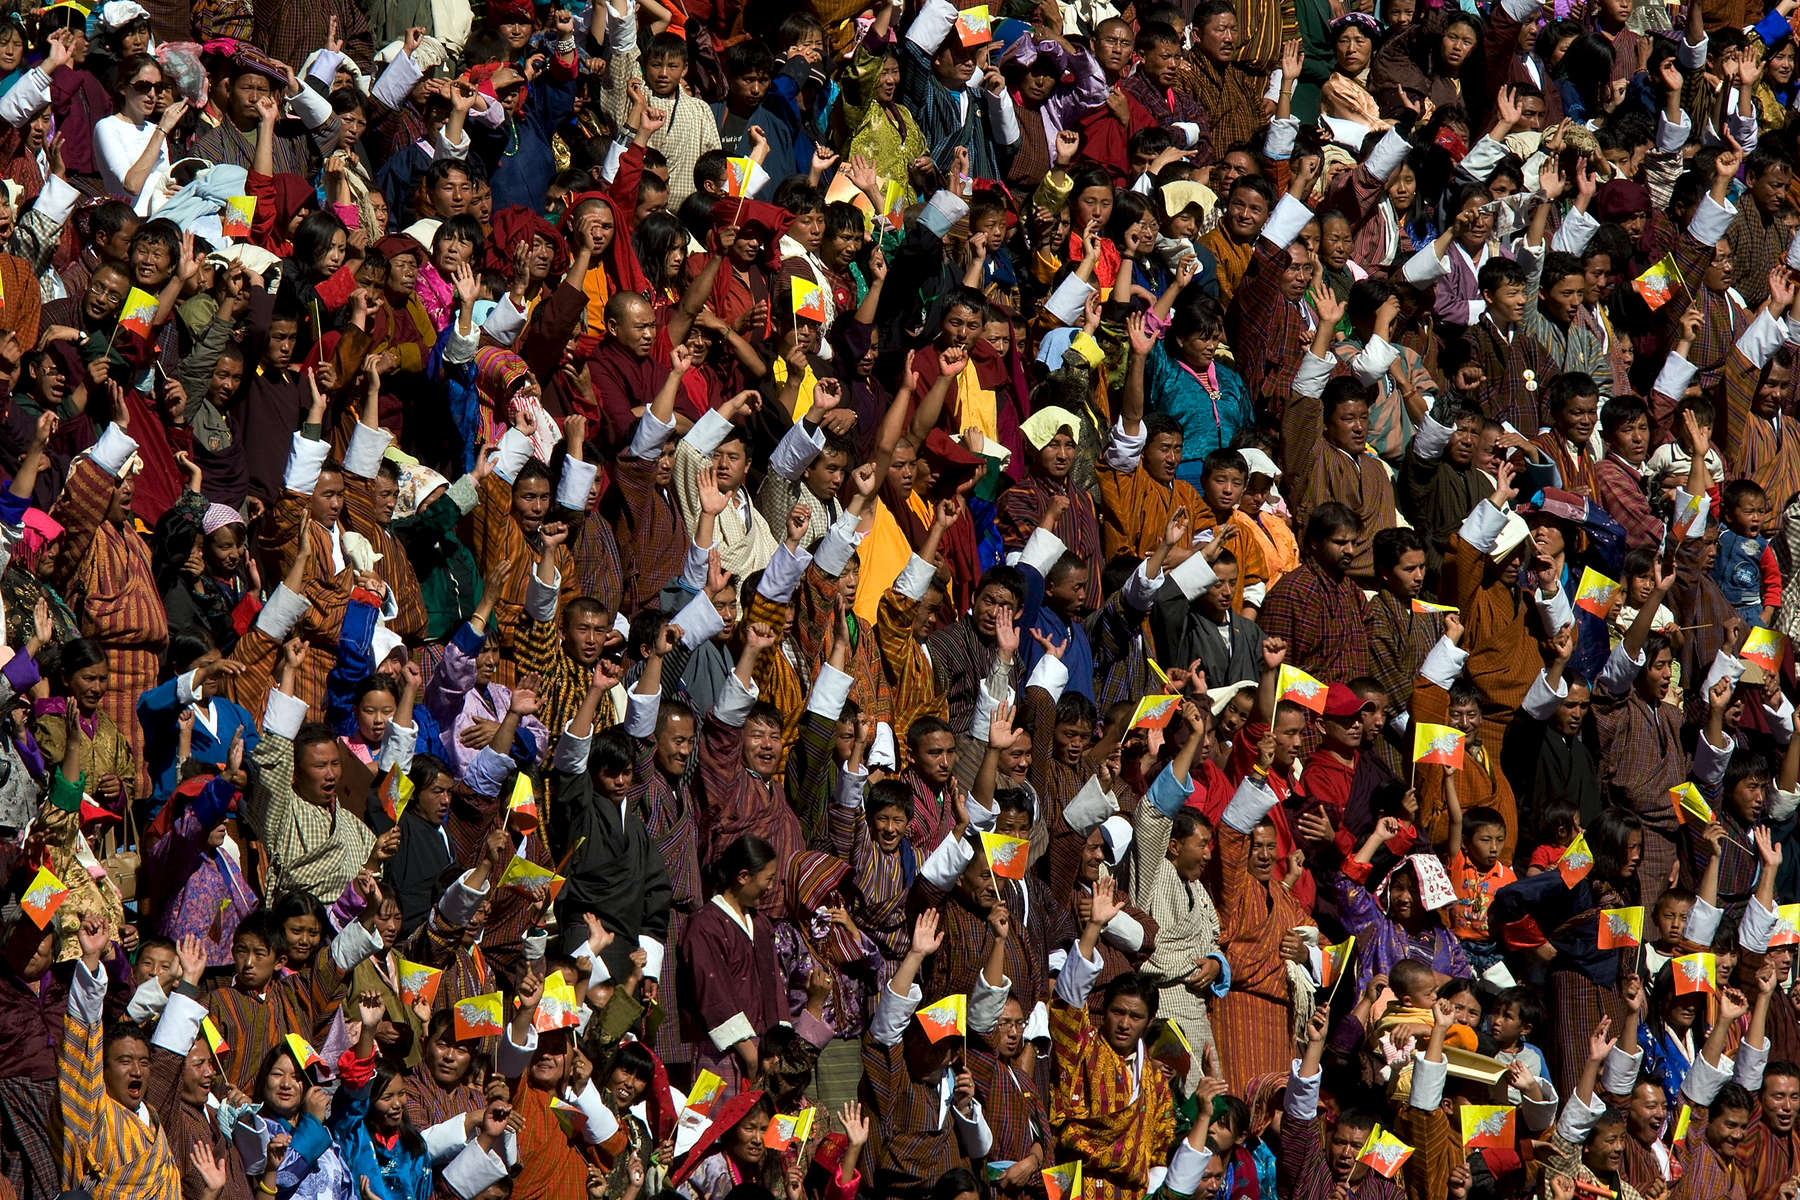 THIMPHU, BHUTAN -NOV 7, 2008: Crowds cheer watchng the cultural program during the Coronation celebration at the Chang-Lime-Thang stadium November 7, 2008 in Thimphu, Bhutan. The young Bhutanese king, an Oxford-educated bachelor became the youngest reigning monarch on the planet when he was crowned yesterday. The tiny Himalayan kingdom, a Buddhist nation of 635,000 people is wedged between China and India.  (Photo by Paula Bronstein/Getty Images)